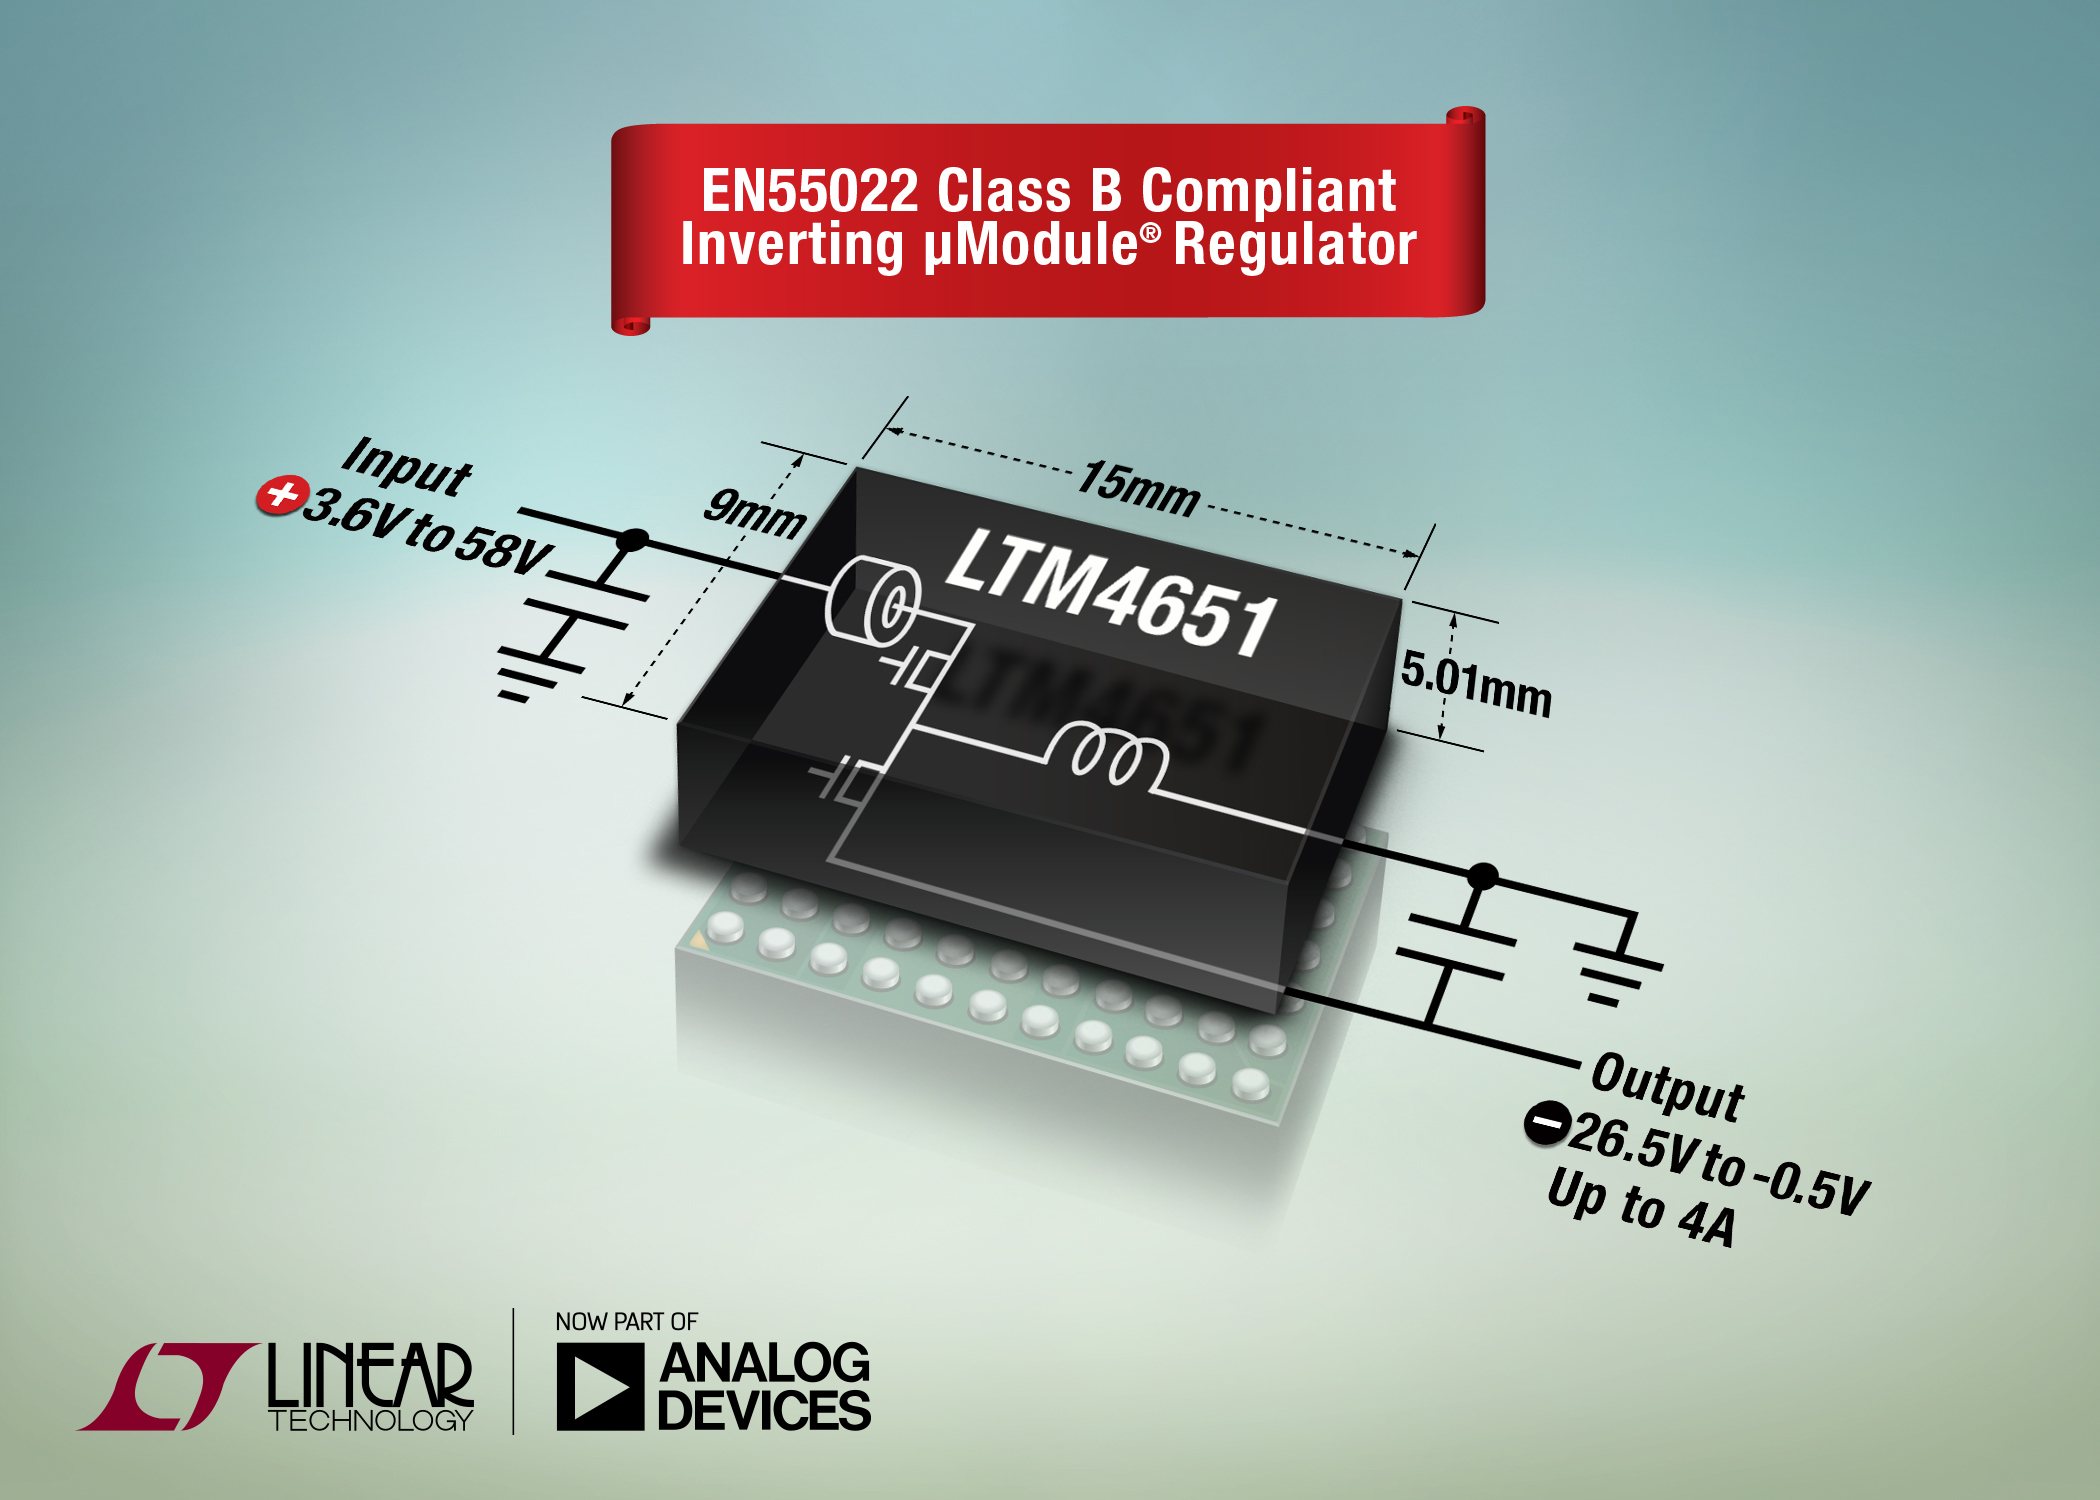 24W Inverting µModule Regulator Is EN55022 Class B Compliant